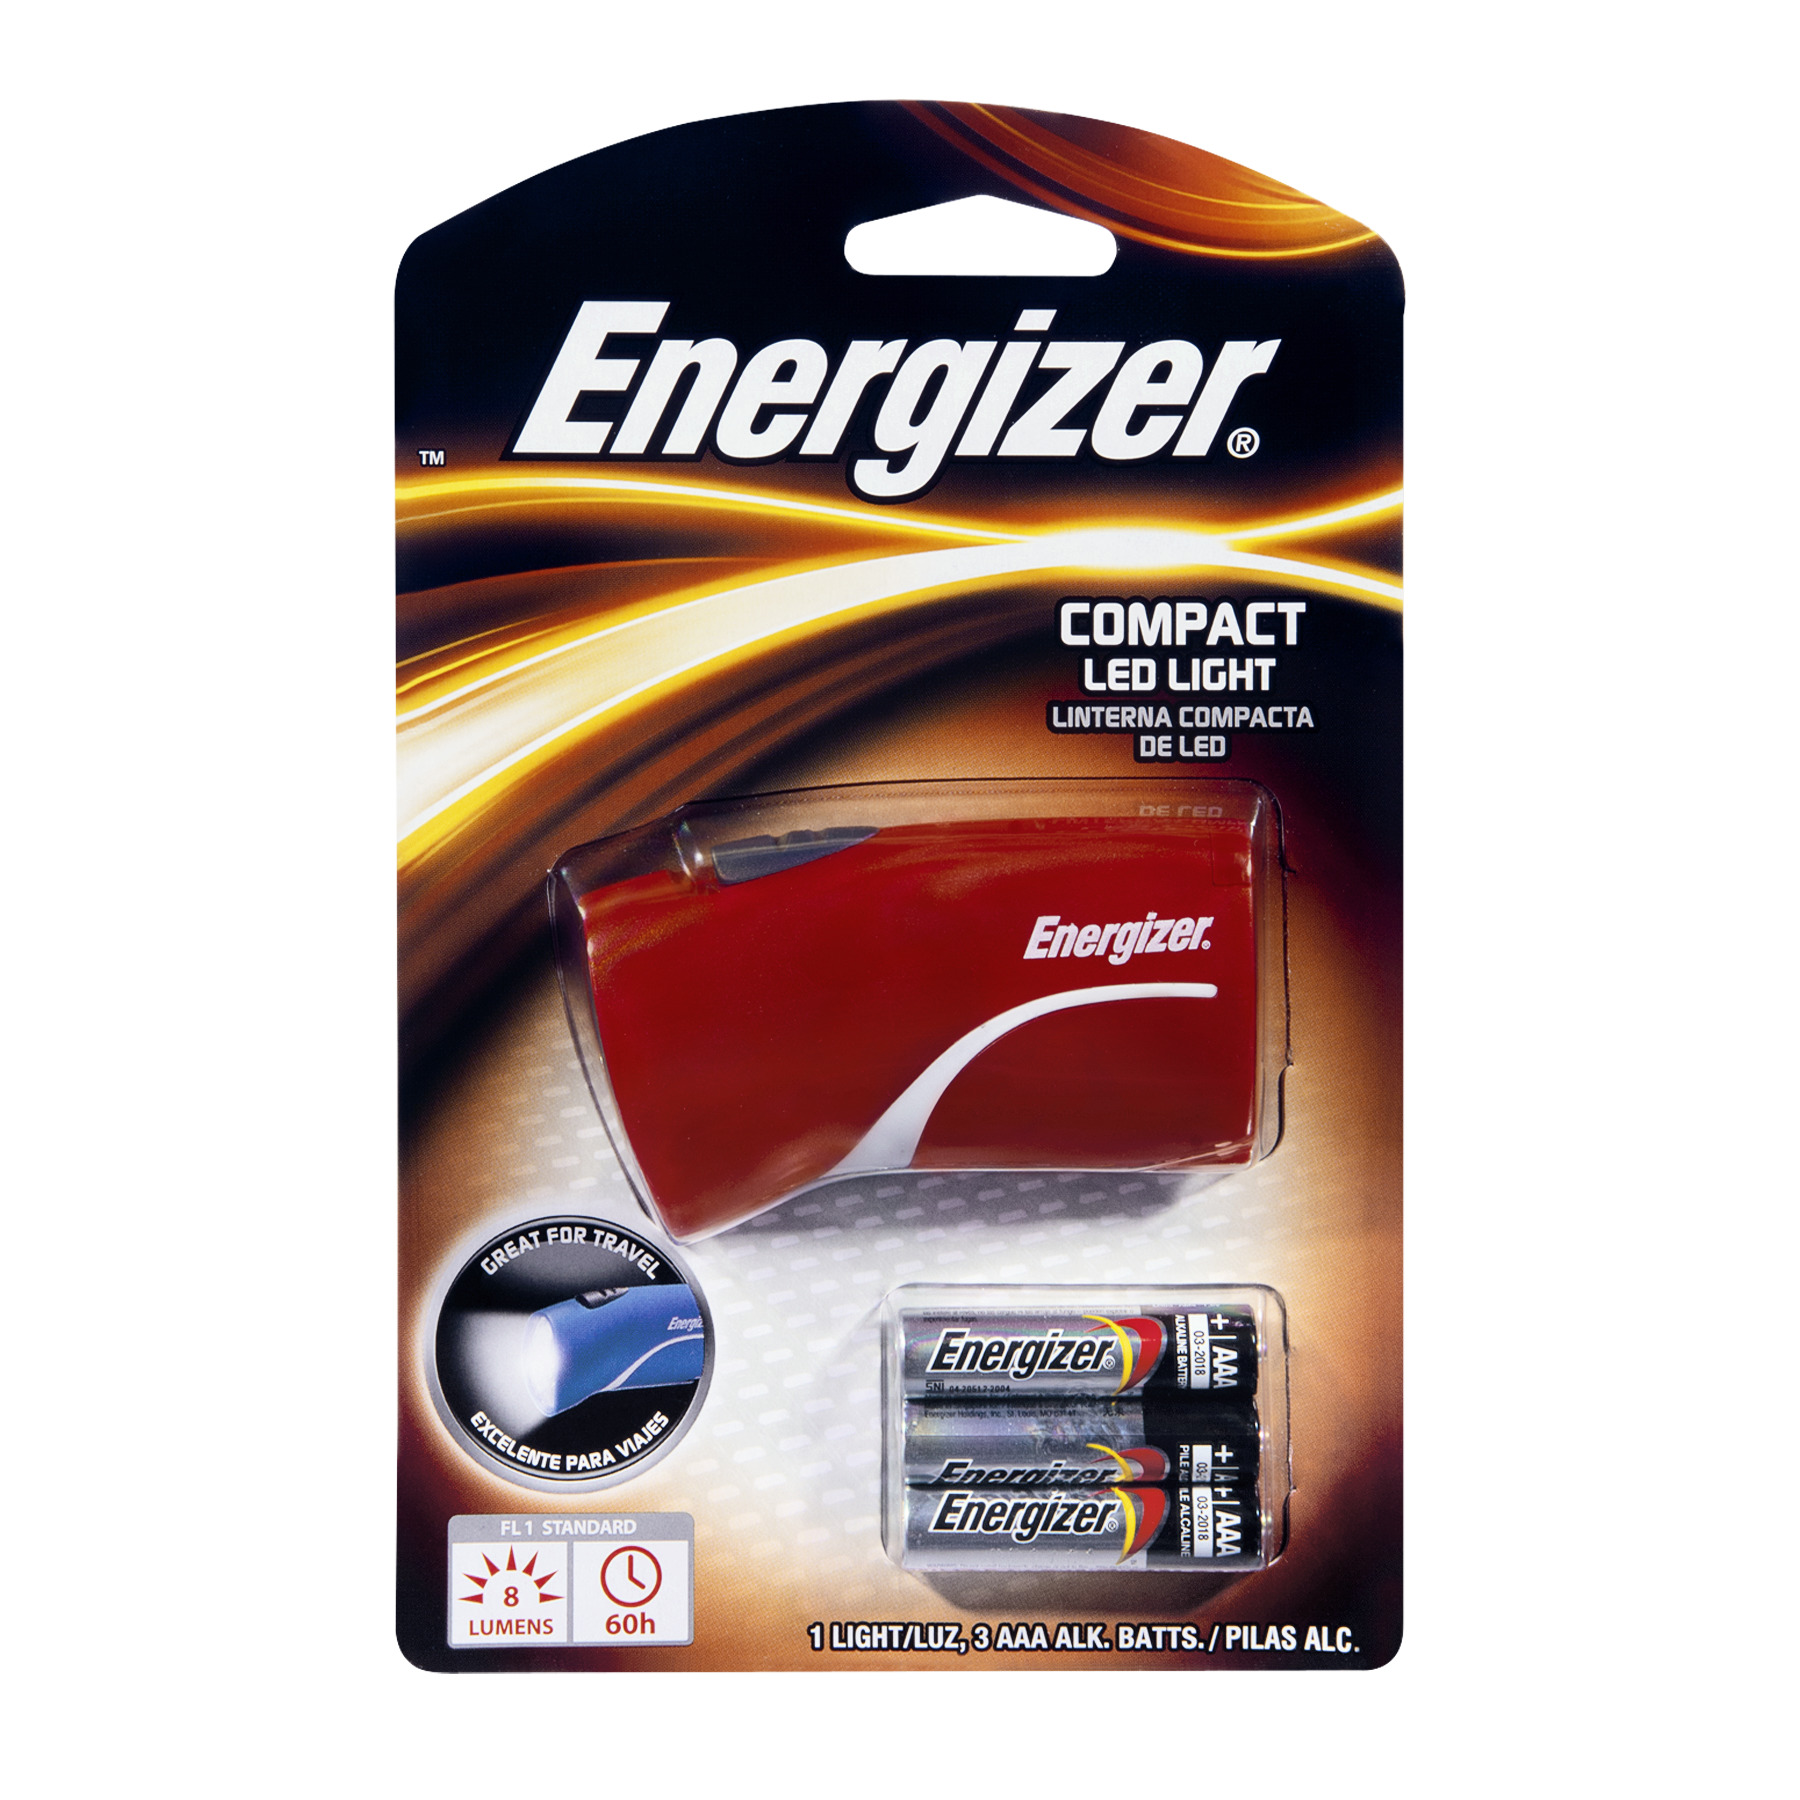 Energizer Compact Led Light, 1.0 CT